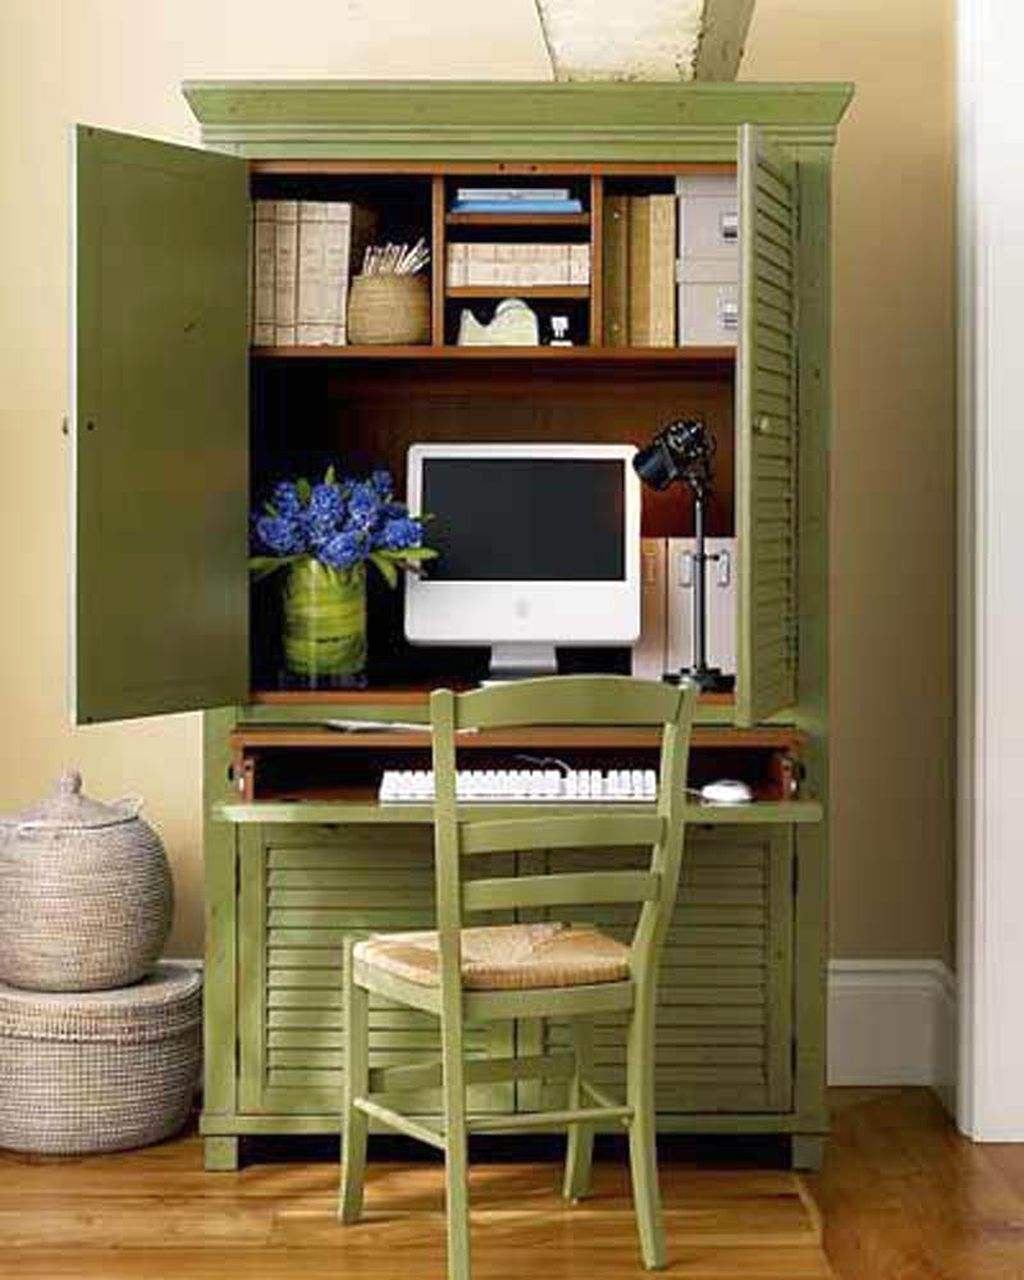 Green cupboard home office design ideas for small spaces for Small den ideas